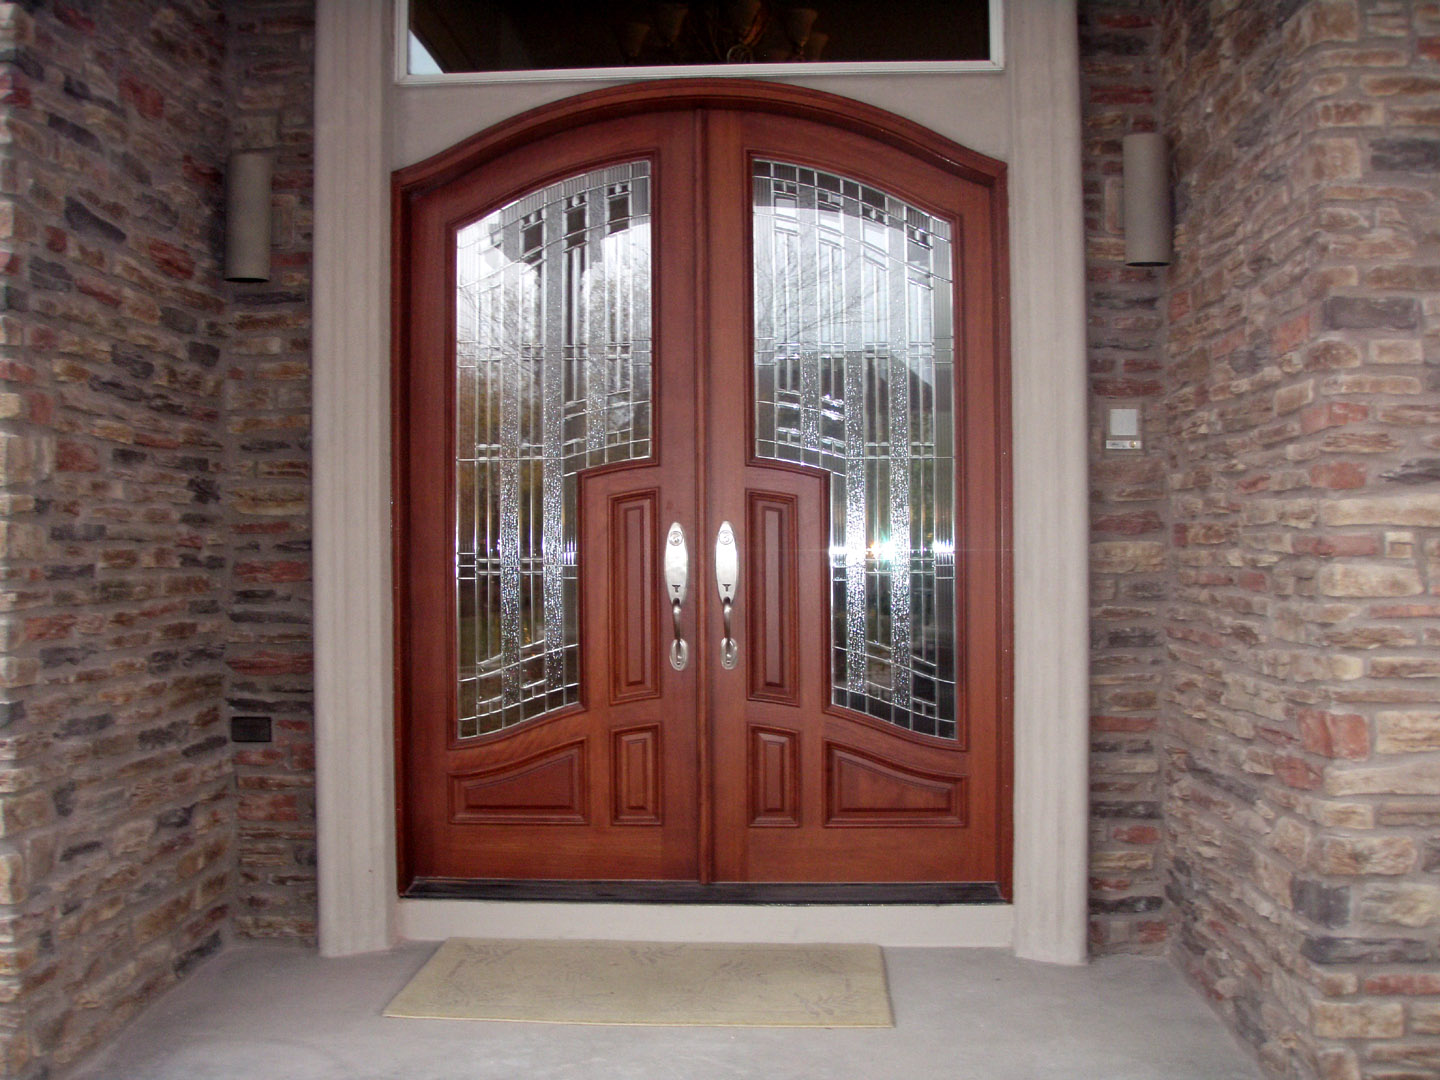 Entrance Doors For Sale Of 301 Moved Permanently